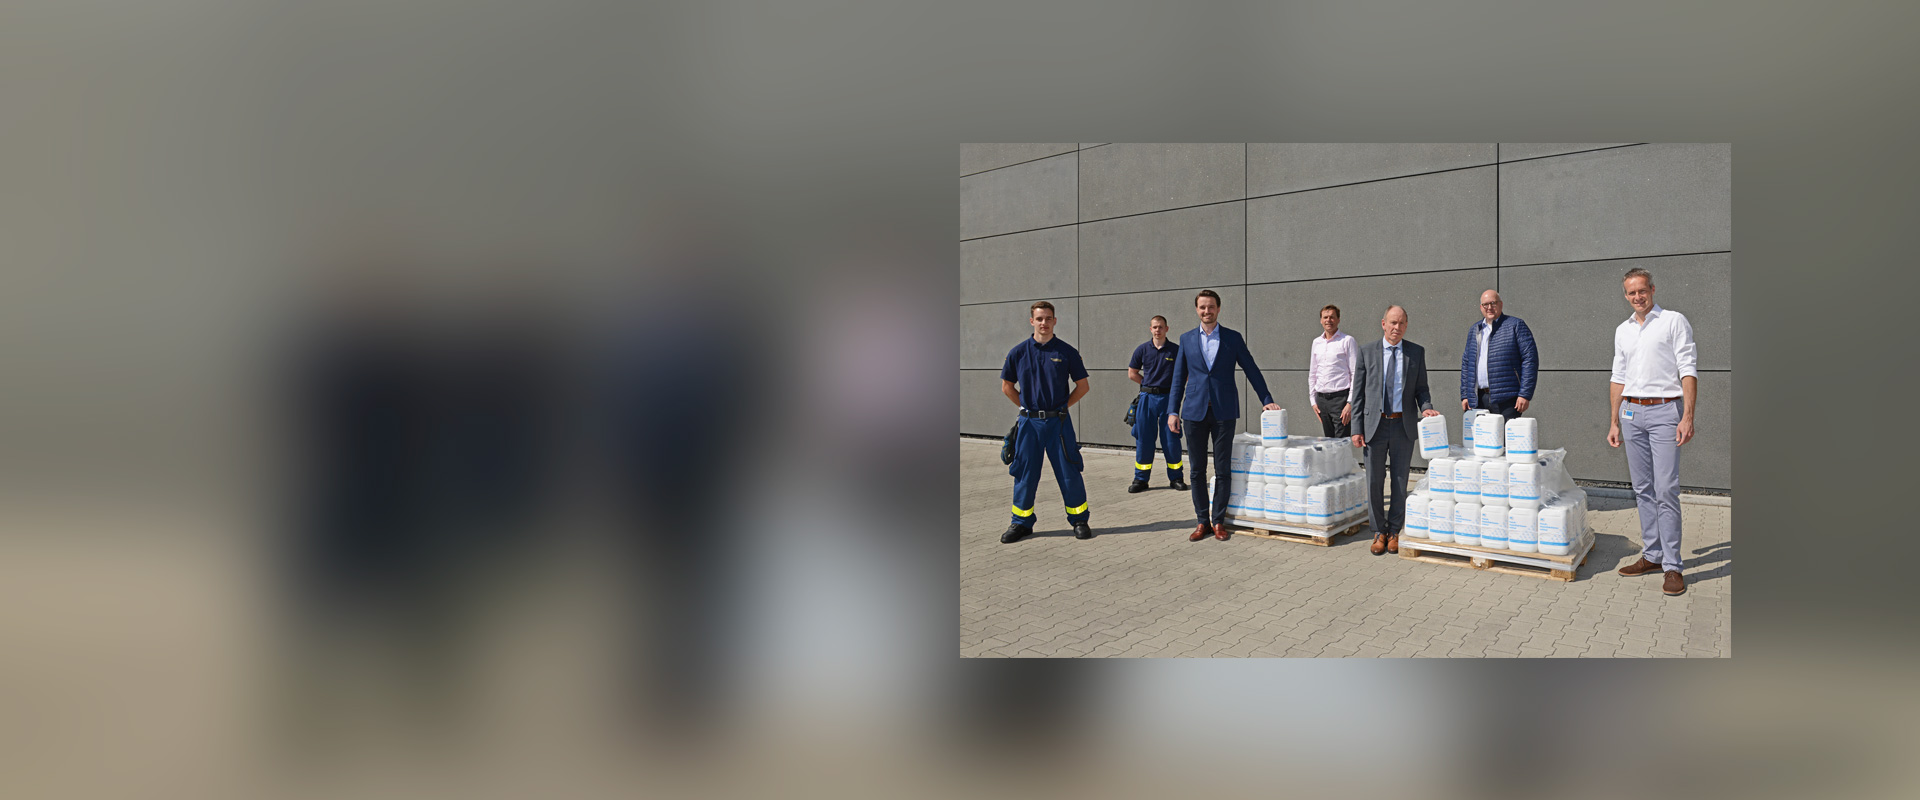 Handover of the 100 five-litre containers of disinfectant from MC-Bauchemie's in-house production to the Mayor of Bot-trop, Bernd Tischler, at the company's Am Kruppwald site.